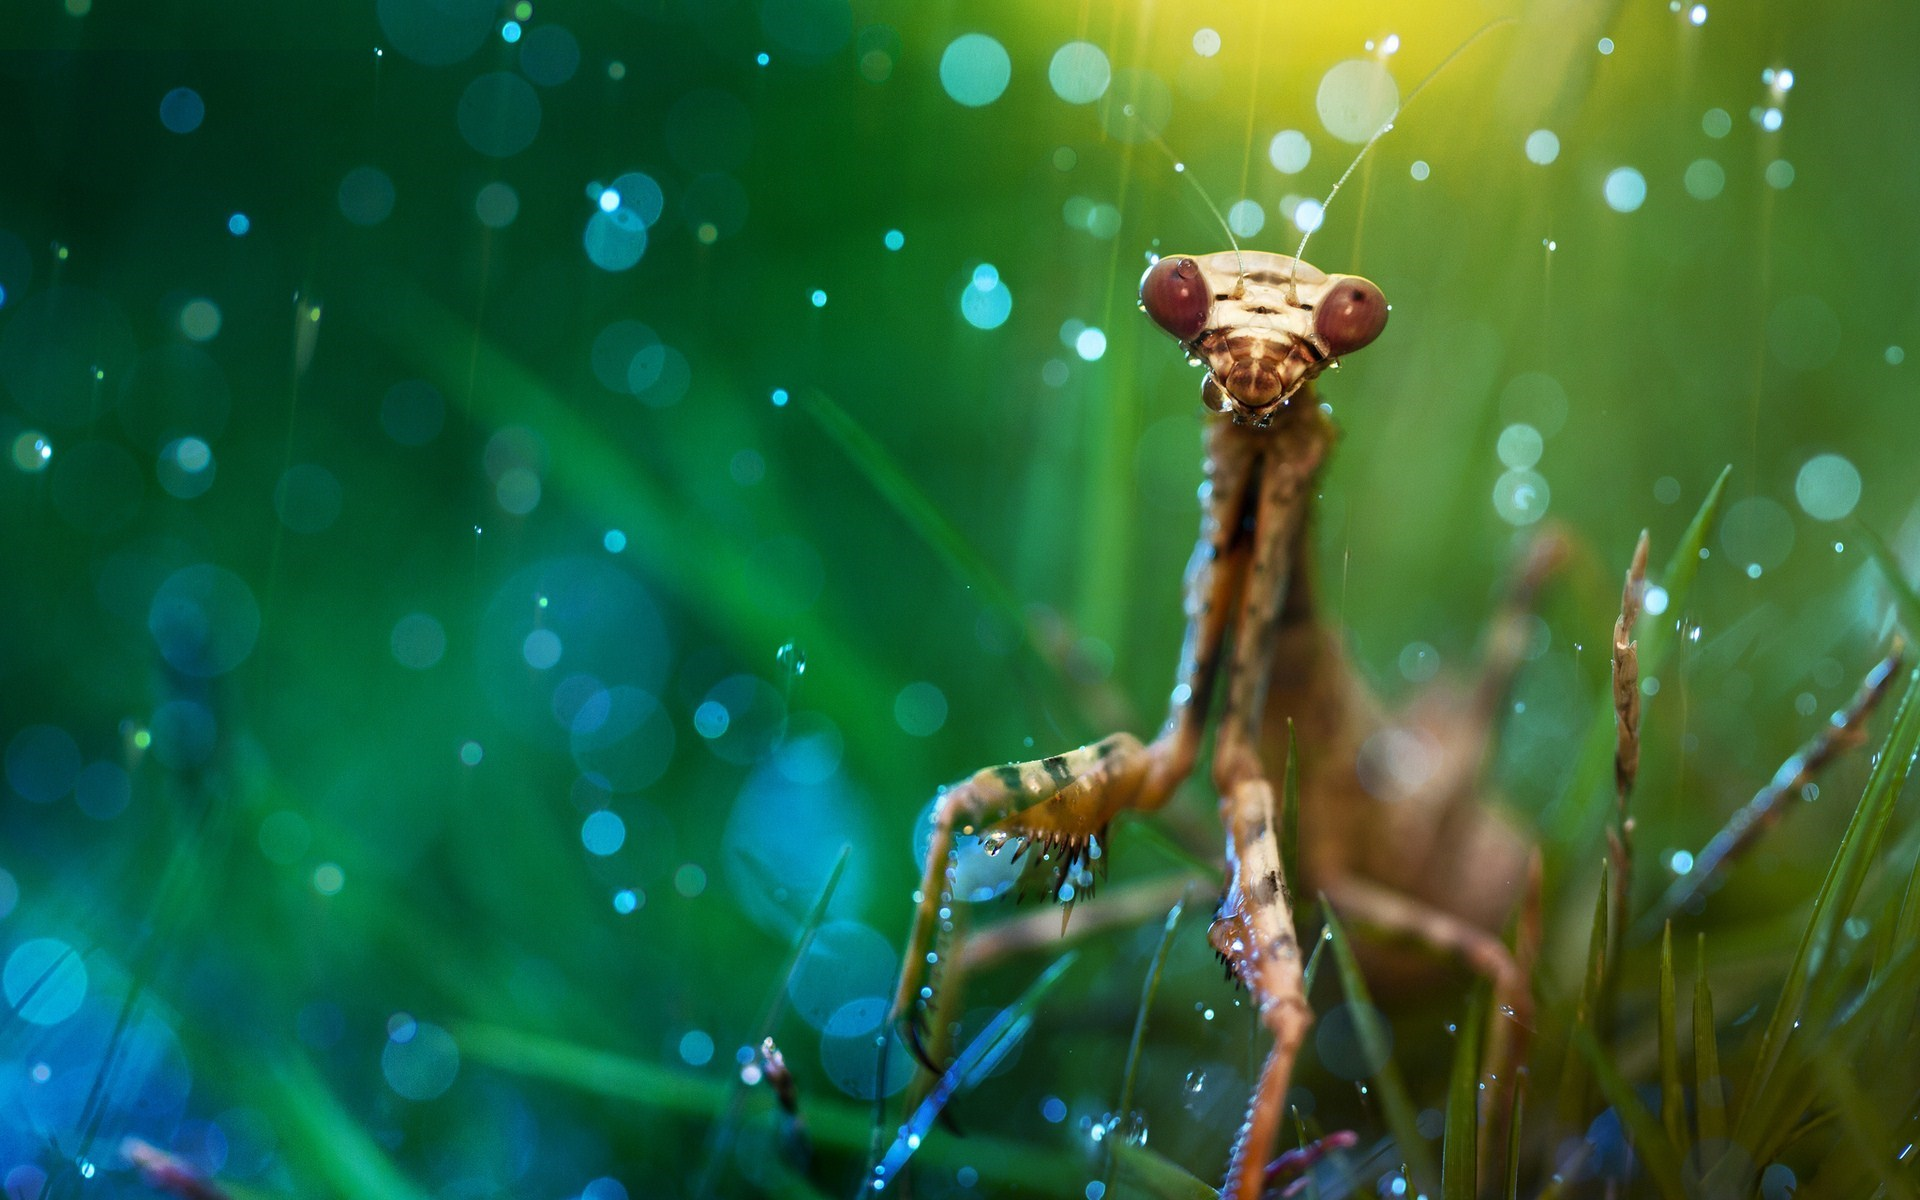 Insect Mantis Grass